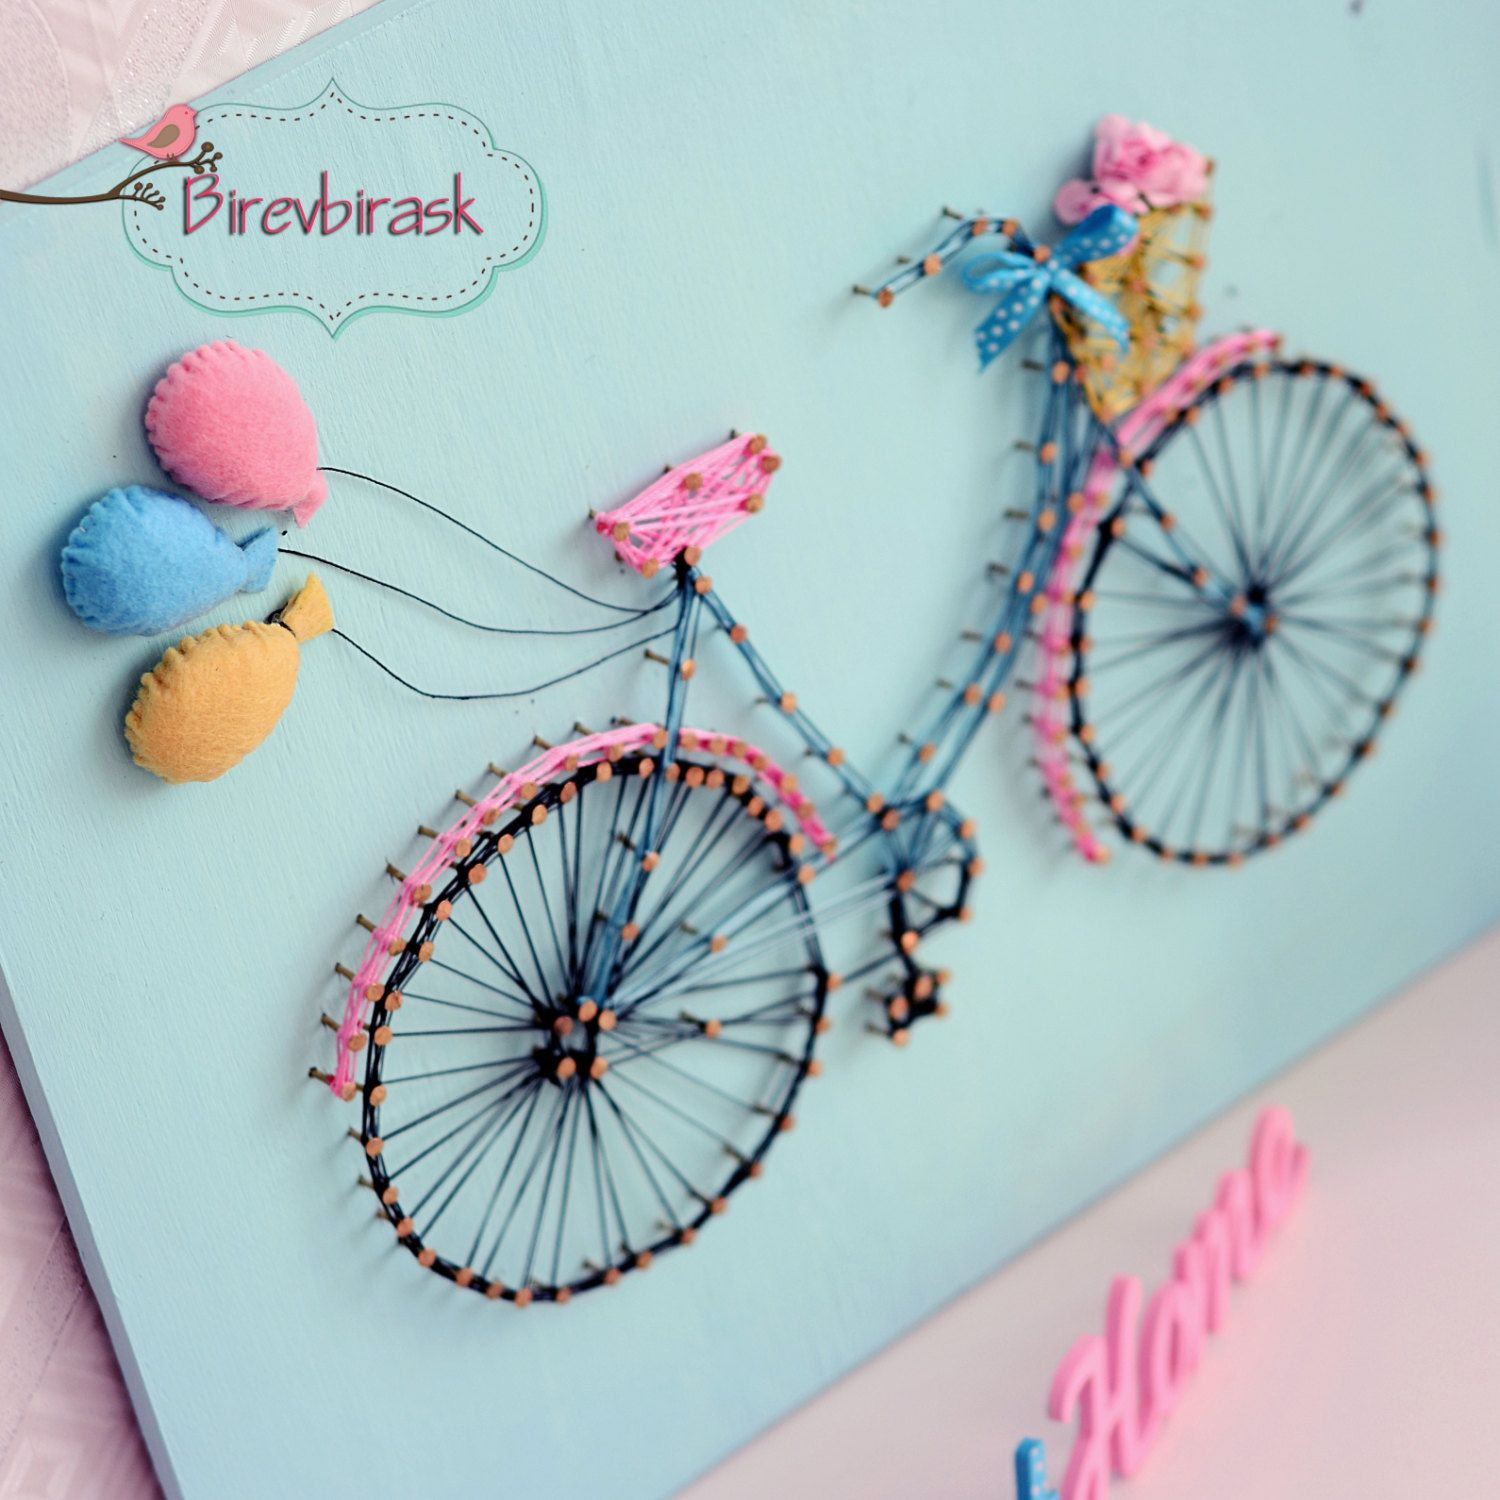 Deko Wand Fahrrad Bike String Art Wall Hanging Bike Home Decor